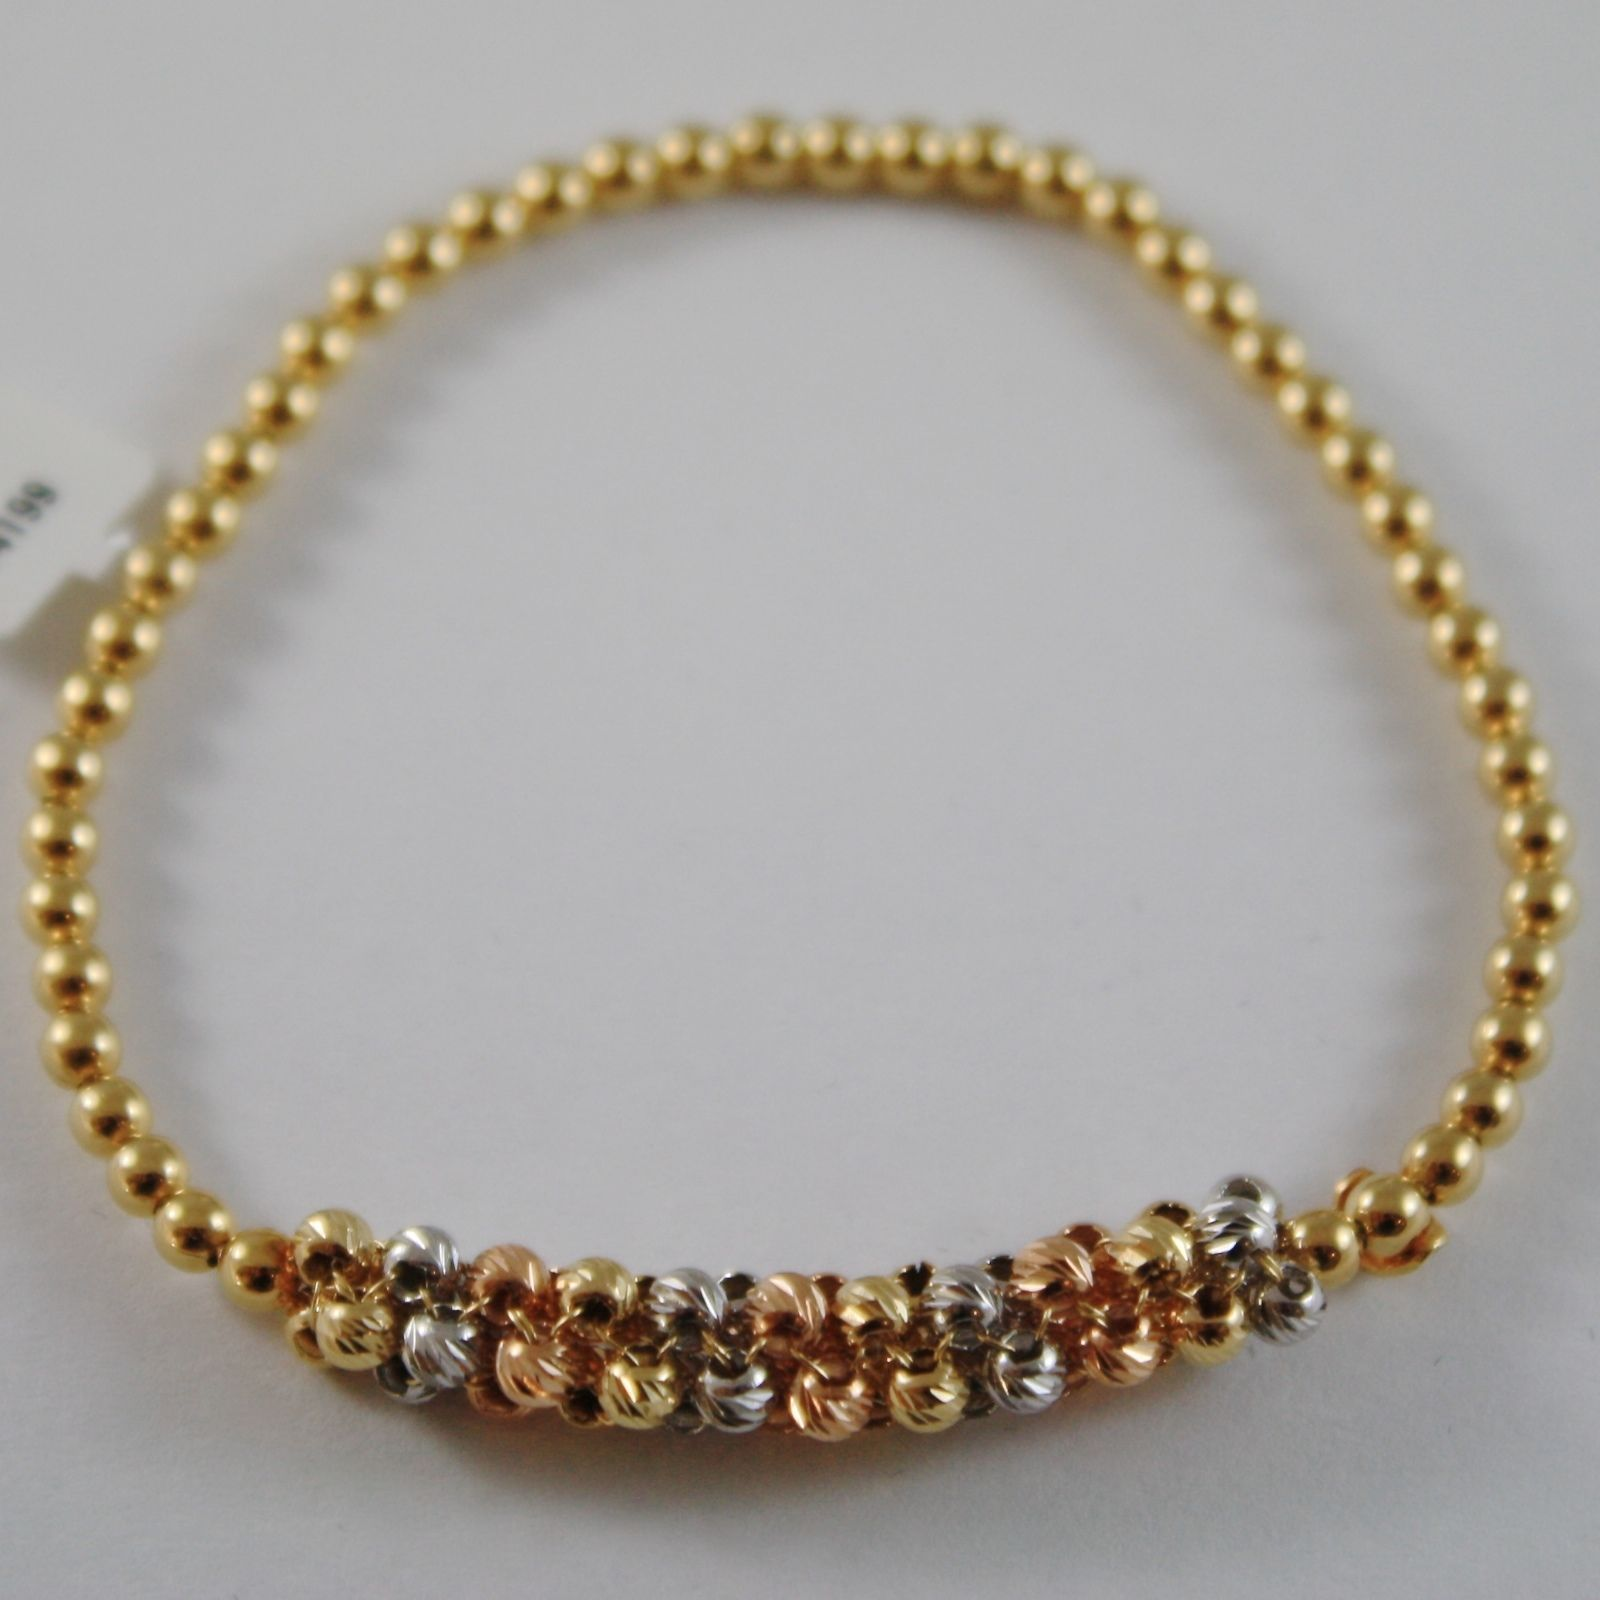 SOLID 18K YELLOW, ROSE & WHITE GOLD BRACELET WITH FACETED BALLS MADE IN ITALY